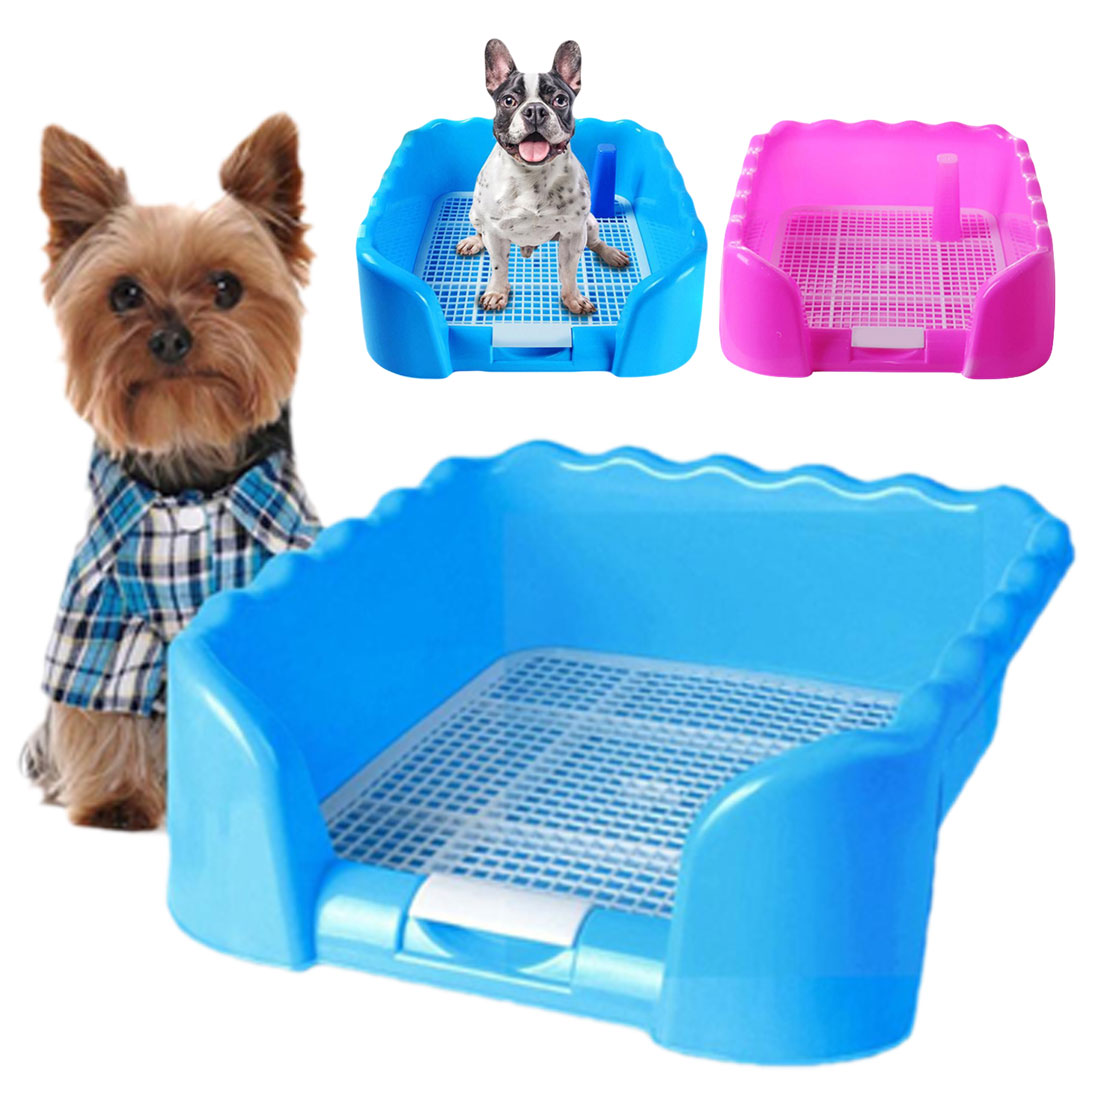 Portable Puppy Training Tray with Fence for Pet Dogs and Cats Potty and Pee Training Indoor